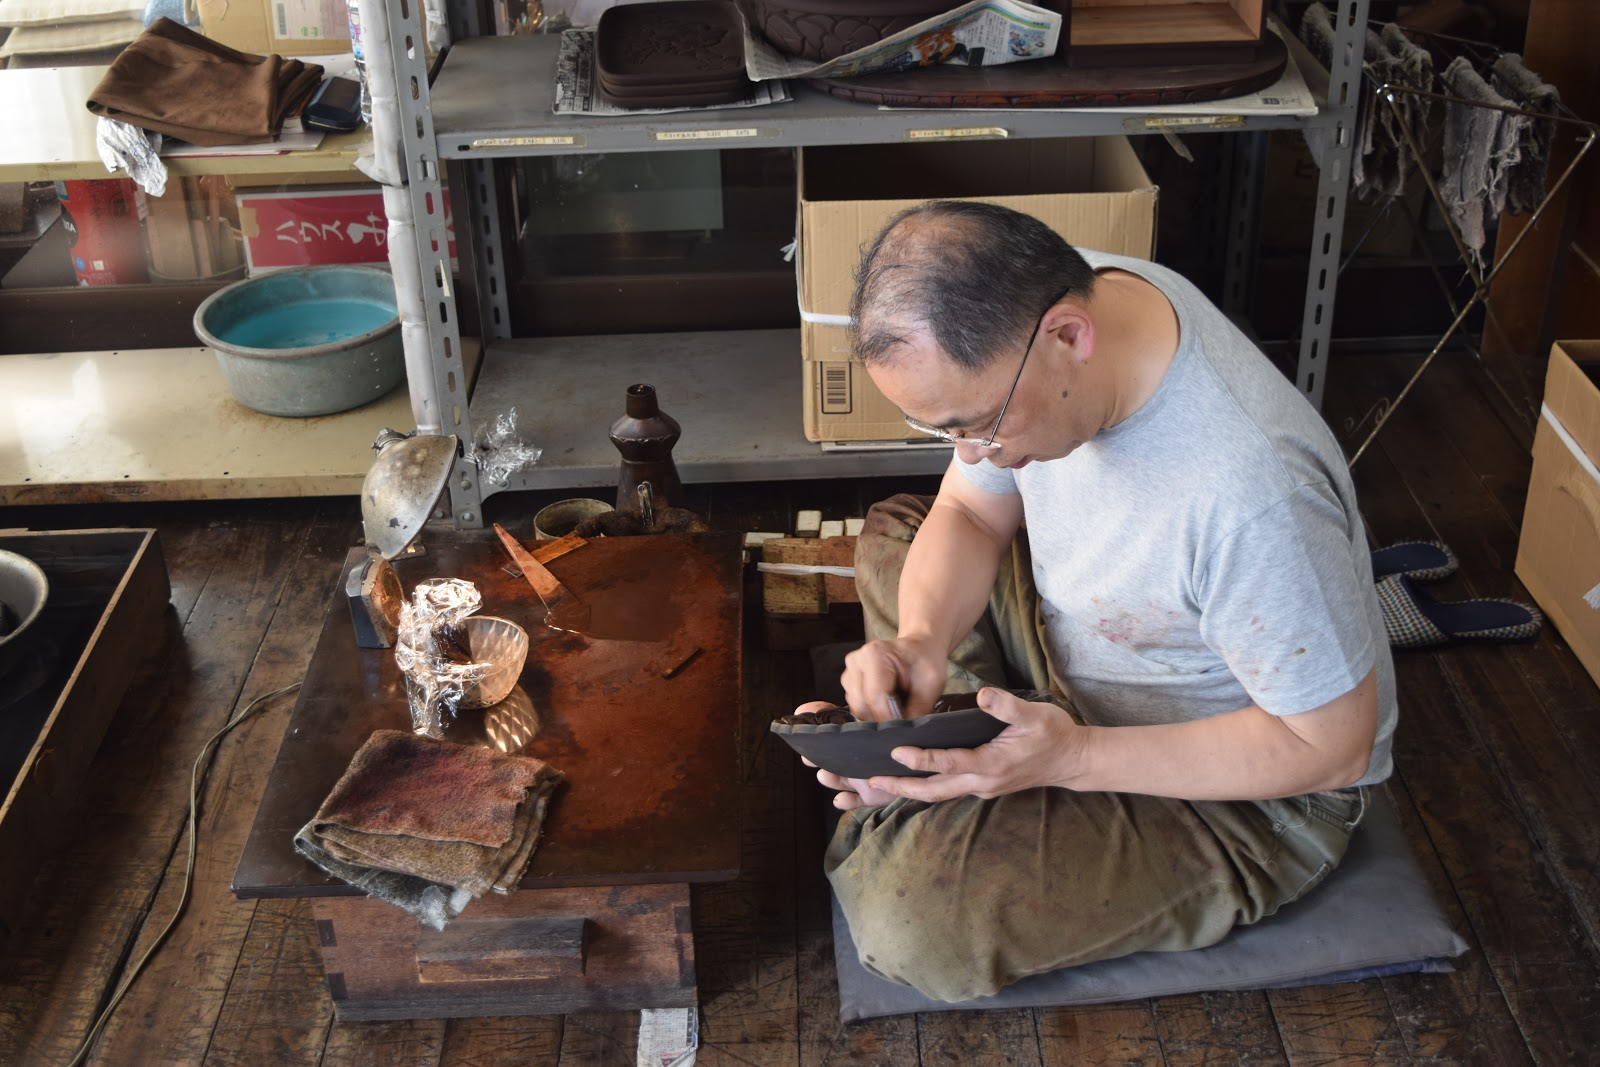 A picture of another artisan working on kamakurabori